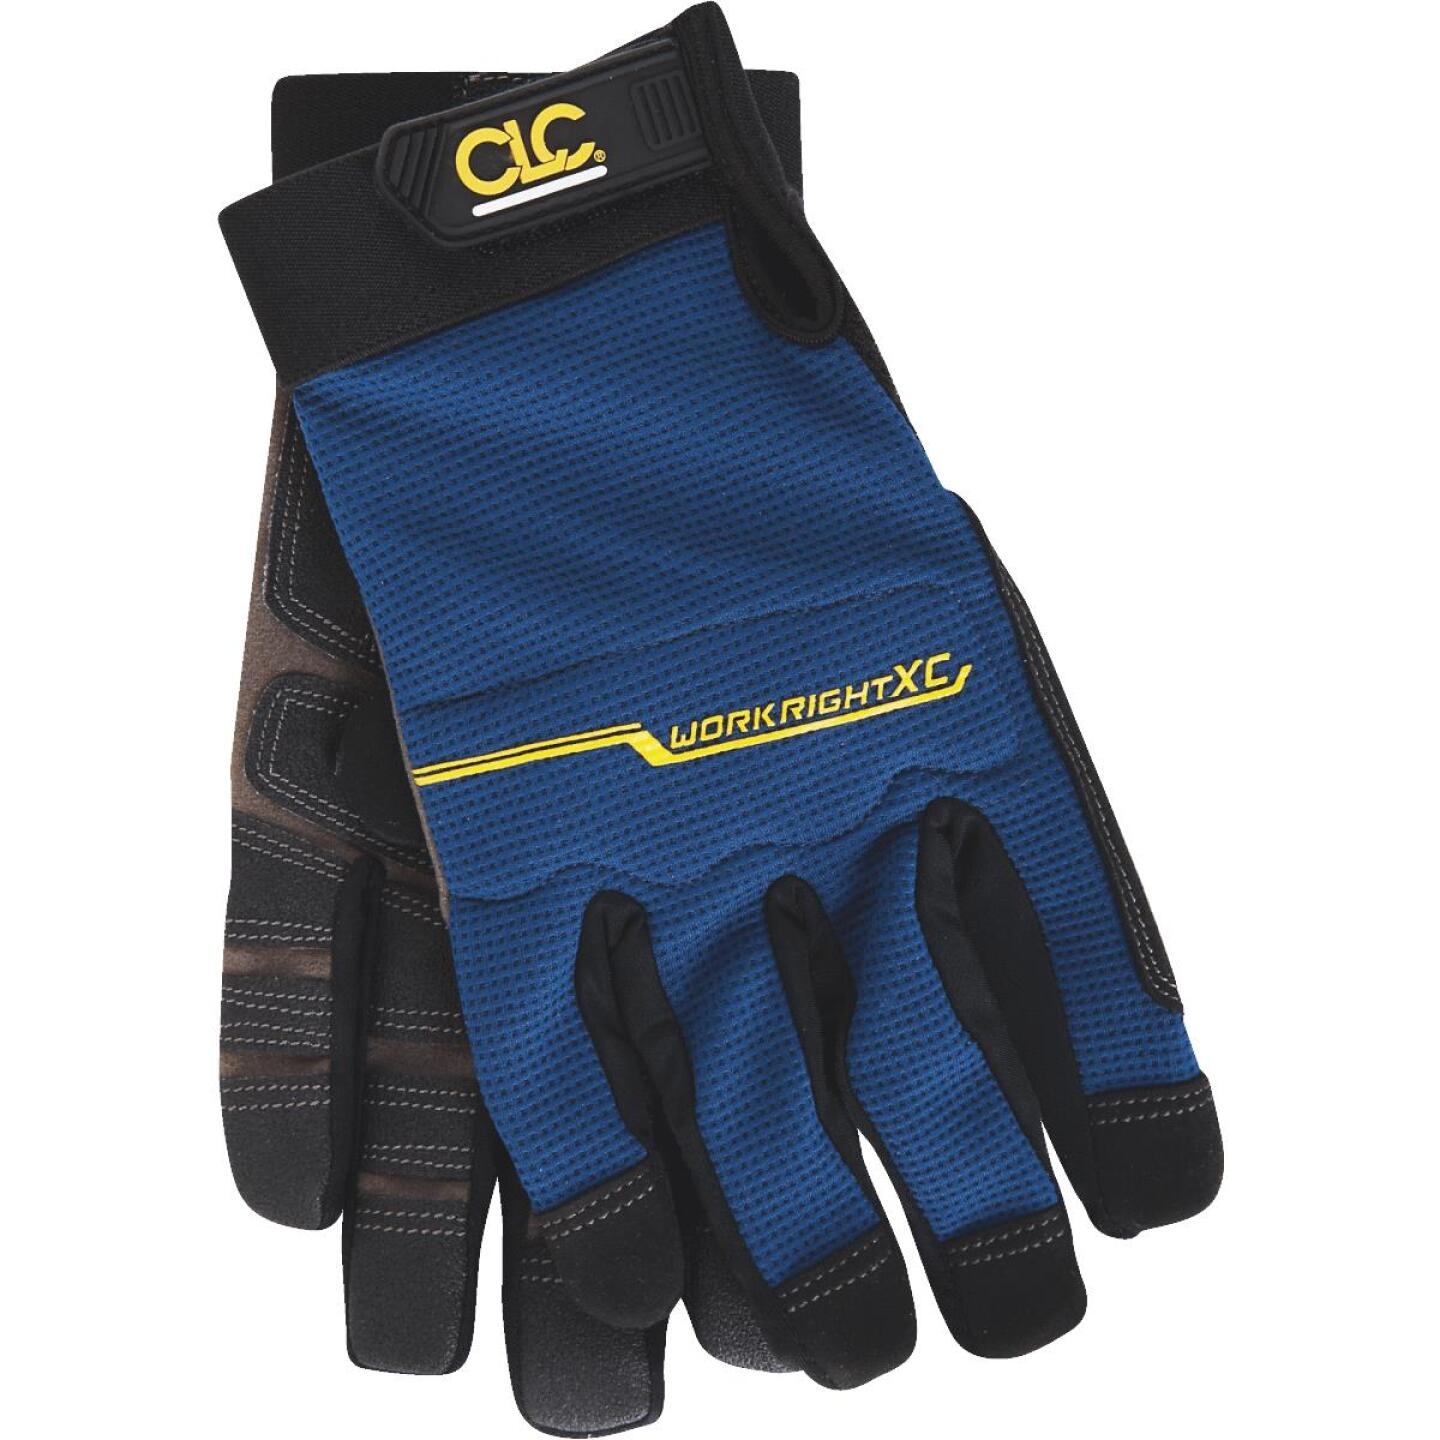 CLC Workright XC Men's Medium Synthetic Leather Flex Grip High Performance Glove Image 1